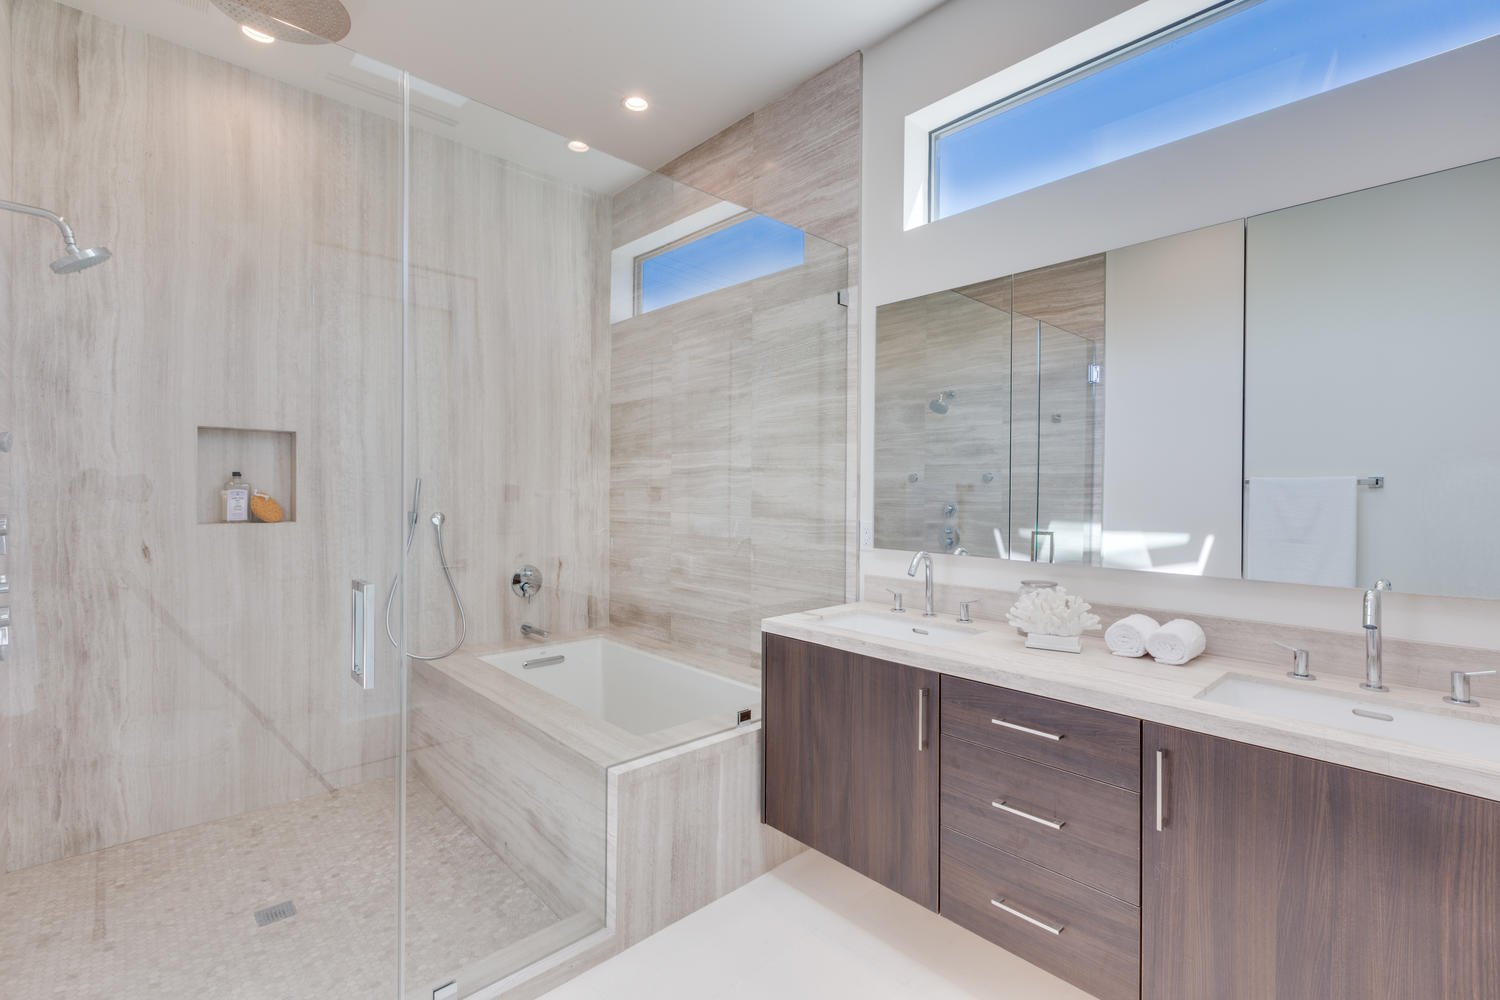 Bath, Drop In, Limestone, Marble, Drop In, Soaking, Full, Enclosed, Ceiling, Recessed, Stone Tile, and One Piece Master Bathroom  Best Bath Enclosed Stone Tile Ceiling Drop In Photos from The Rosewood Residence